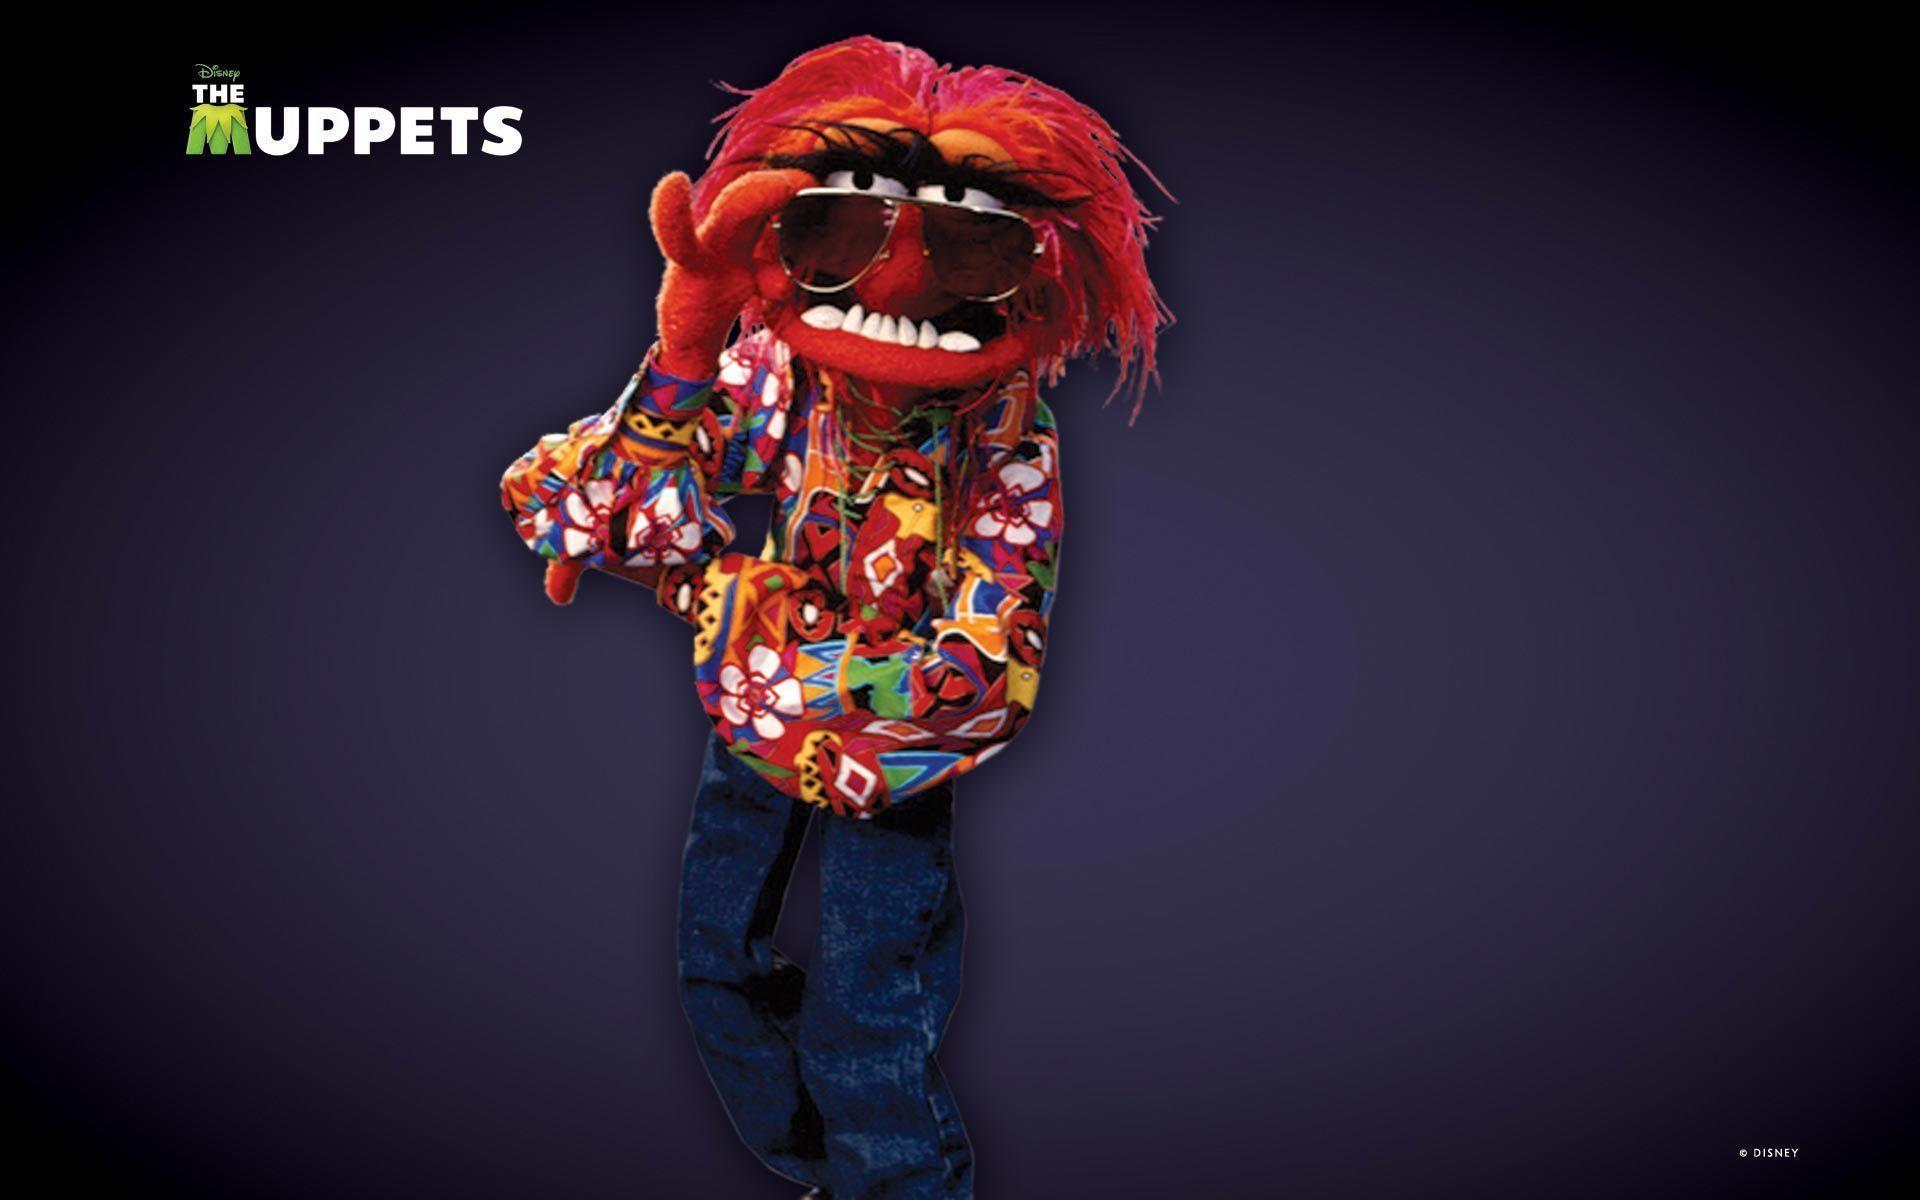 animal muppets wallpaper - photo #3